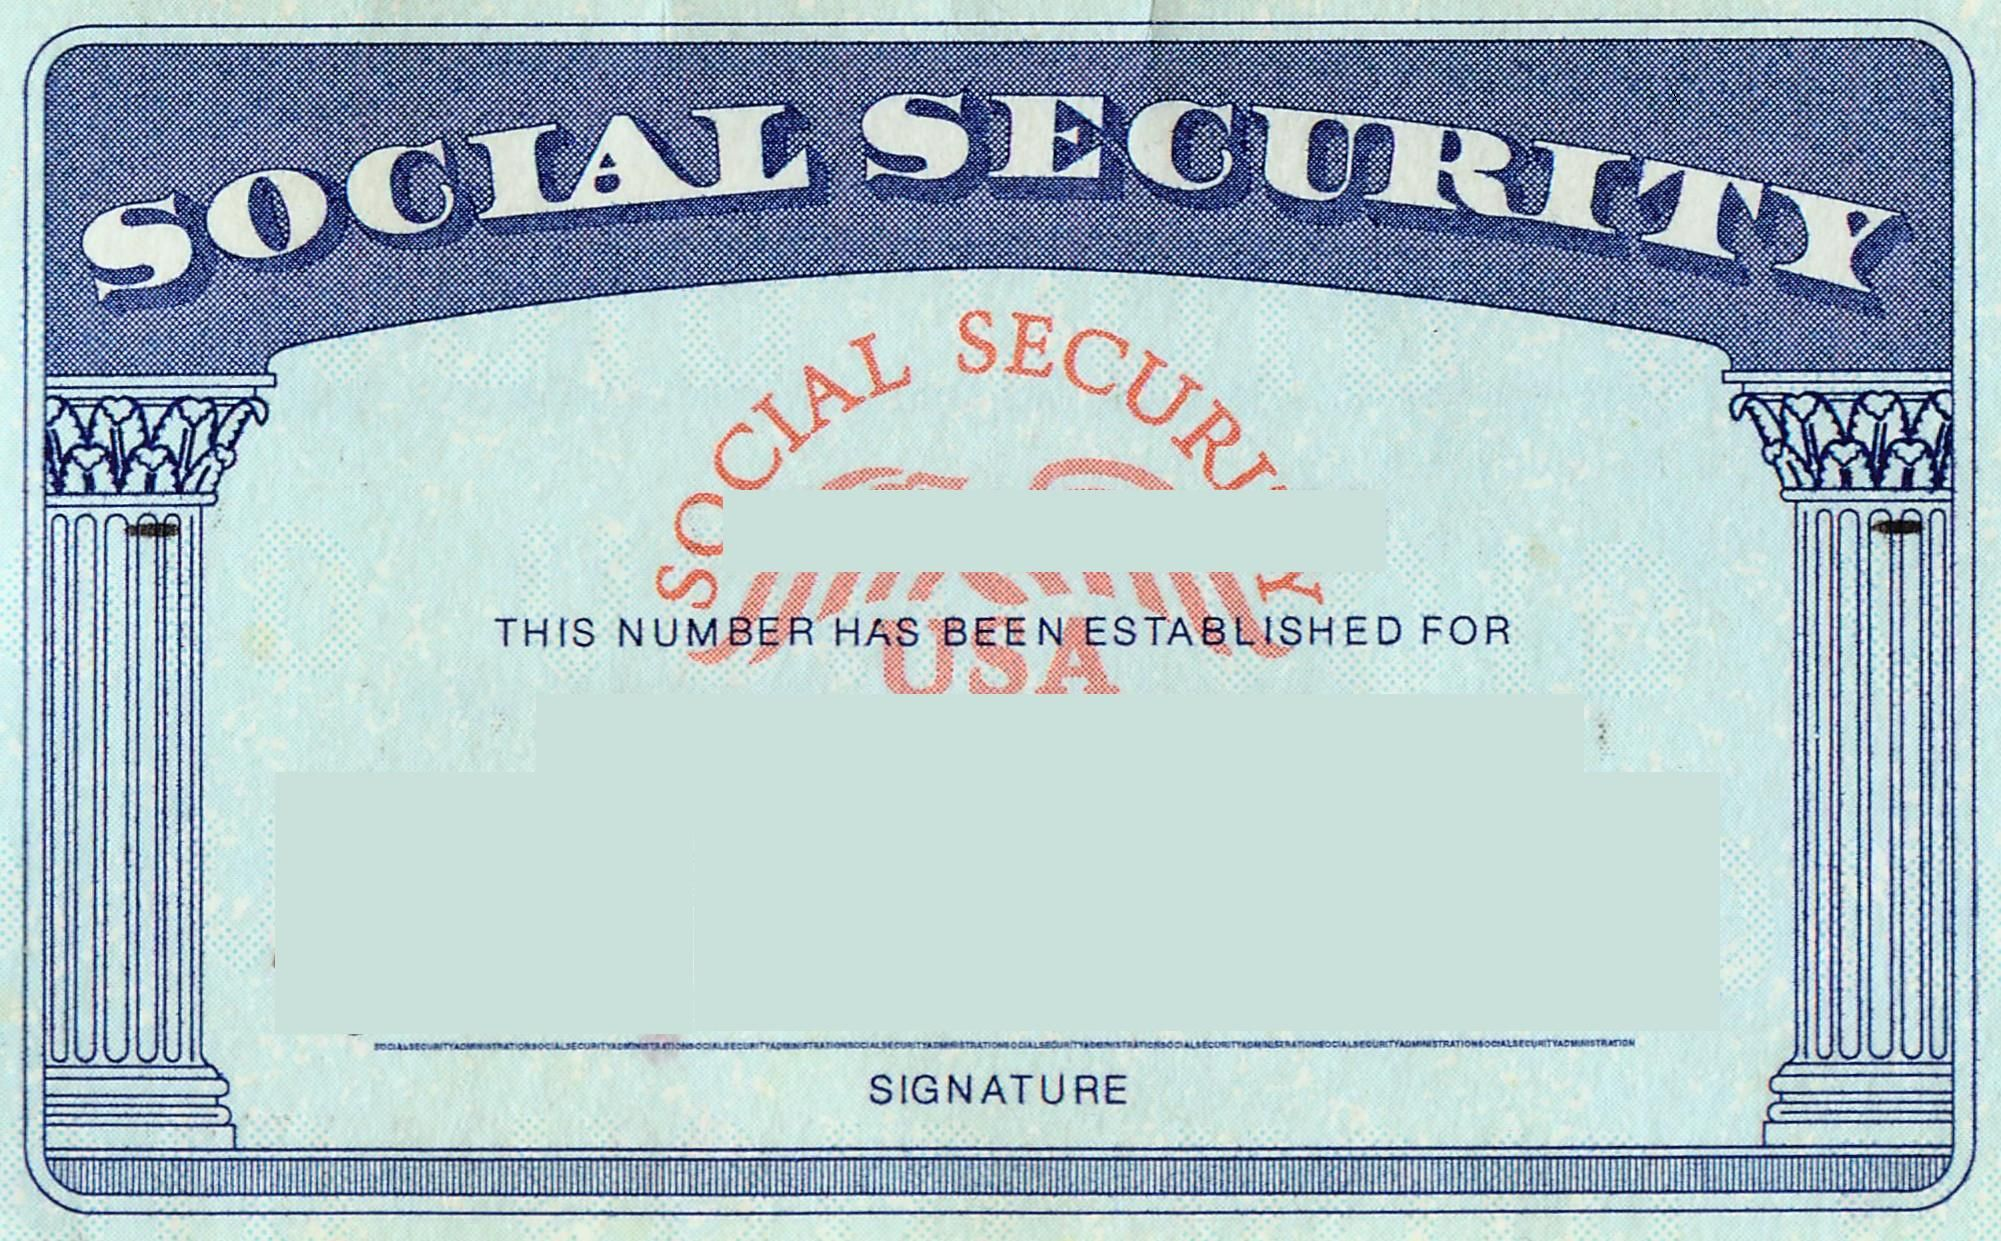 Blank Social Security Card Template Social Security Card Print - Card template free: blank id card template